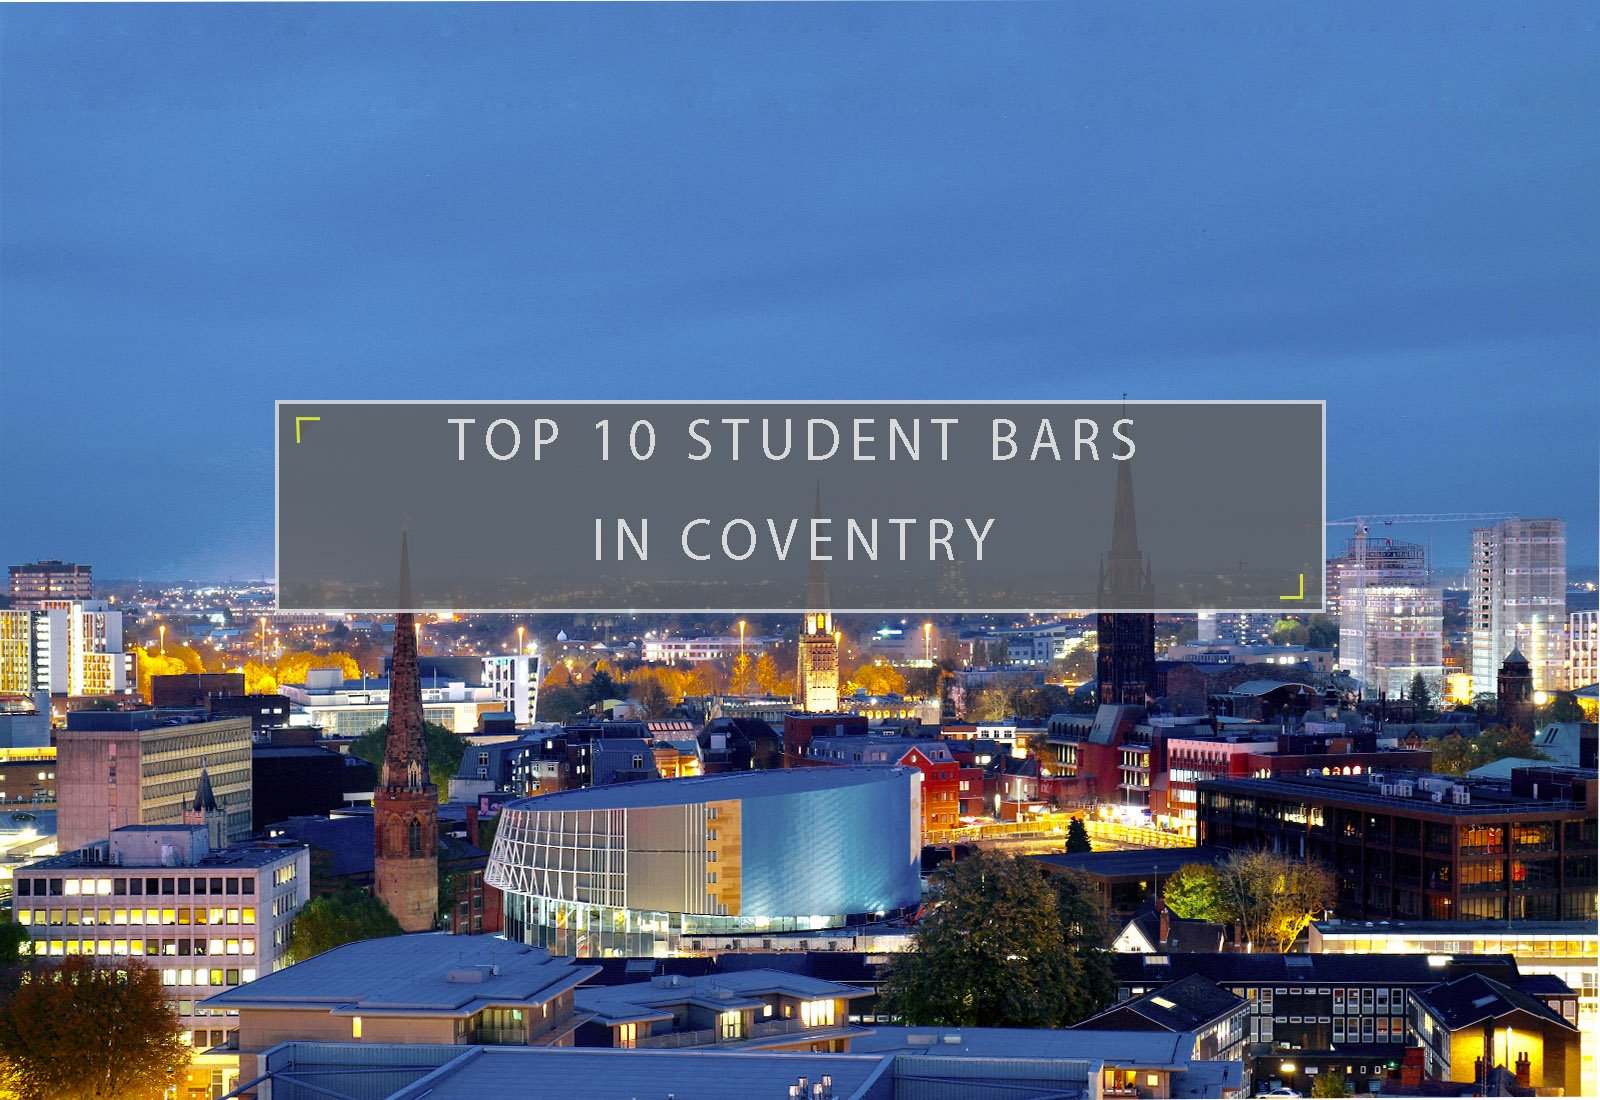 Top 10 Student Bars in Coventry